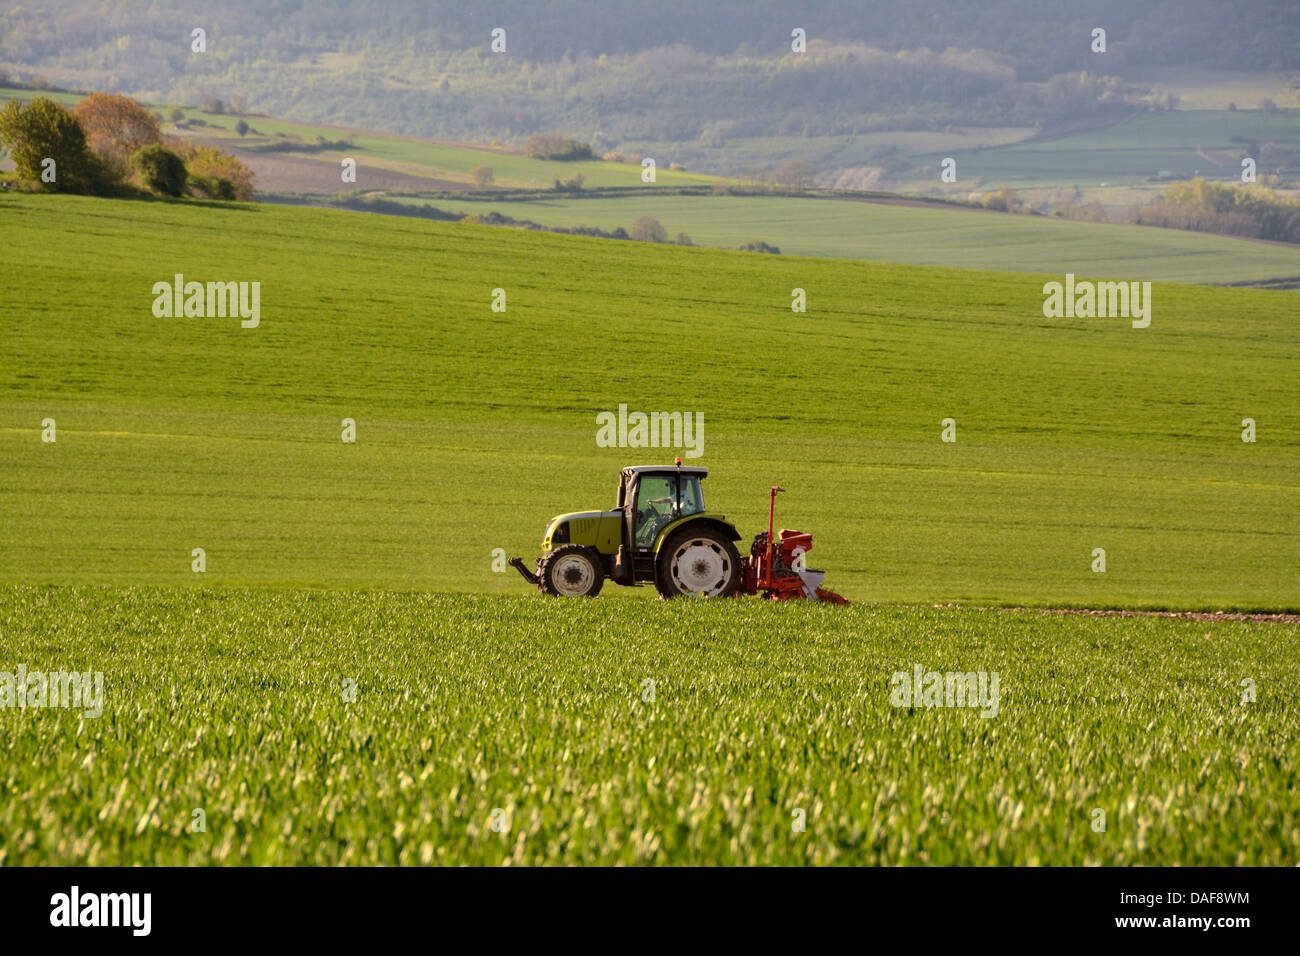 Tractor preparing the soil for the sowing of new crops. Puy de Dome. Auvergne. France - Stock Image